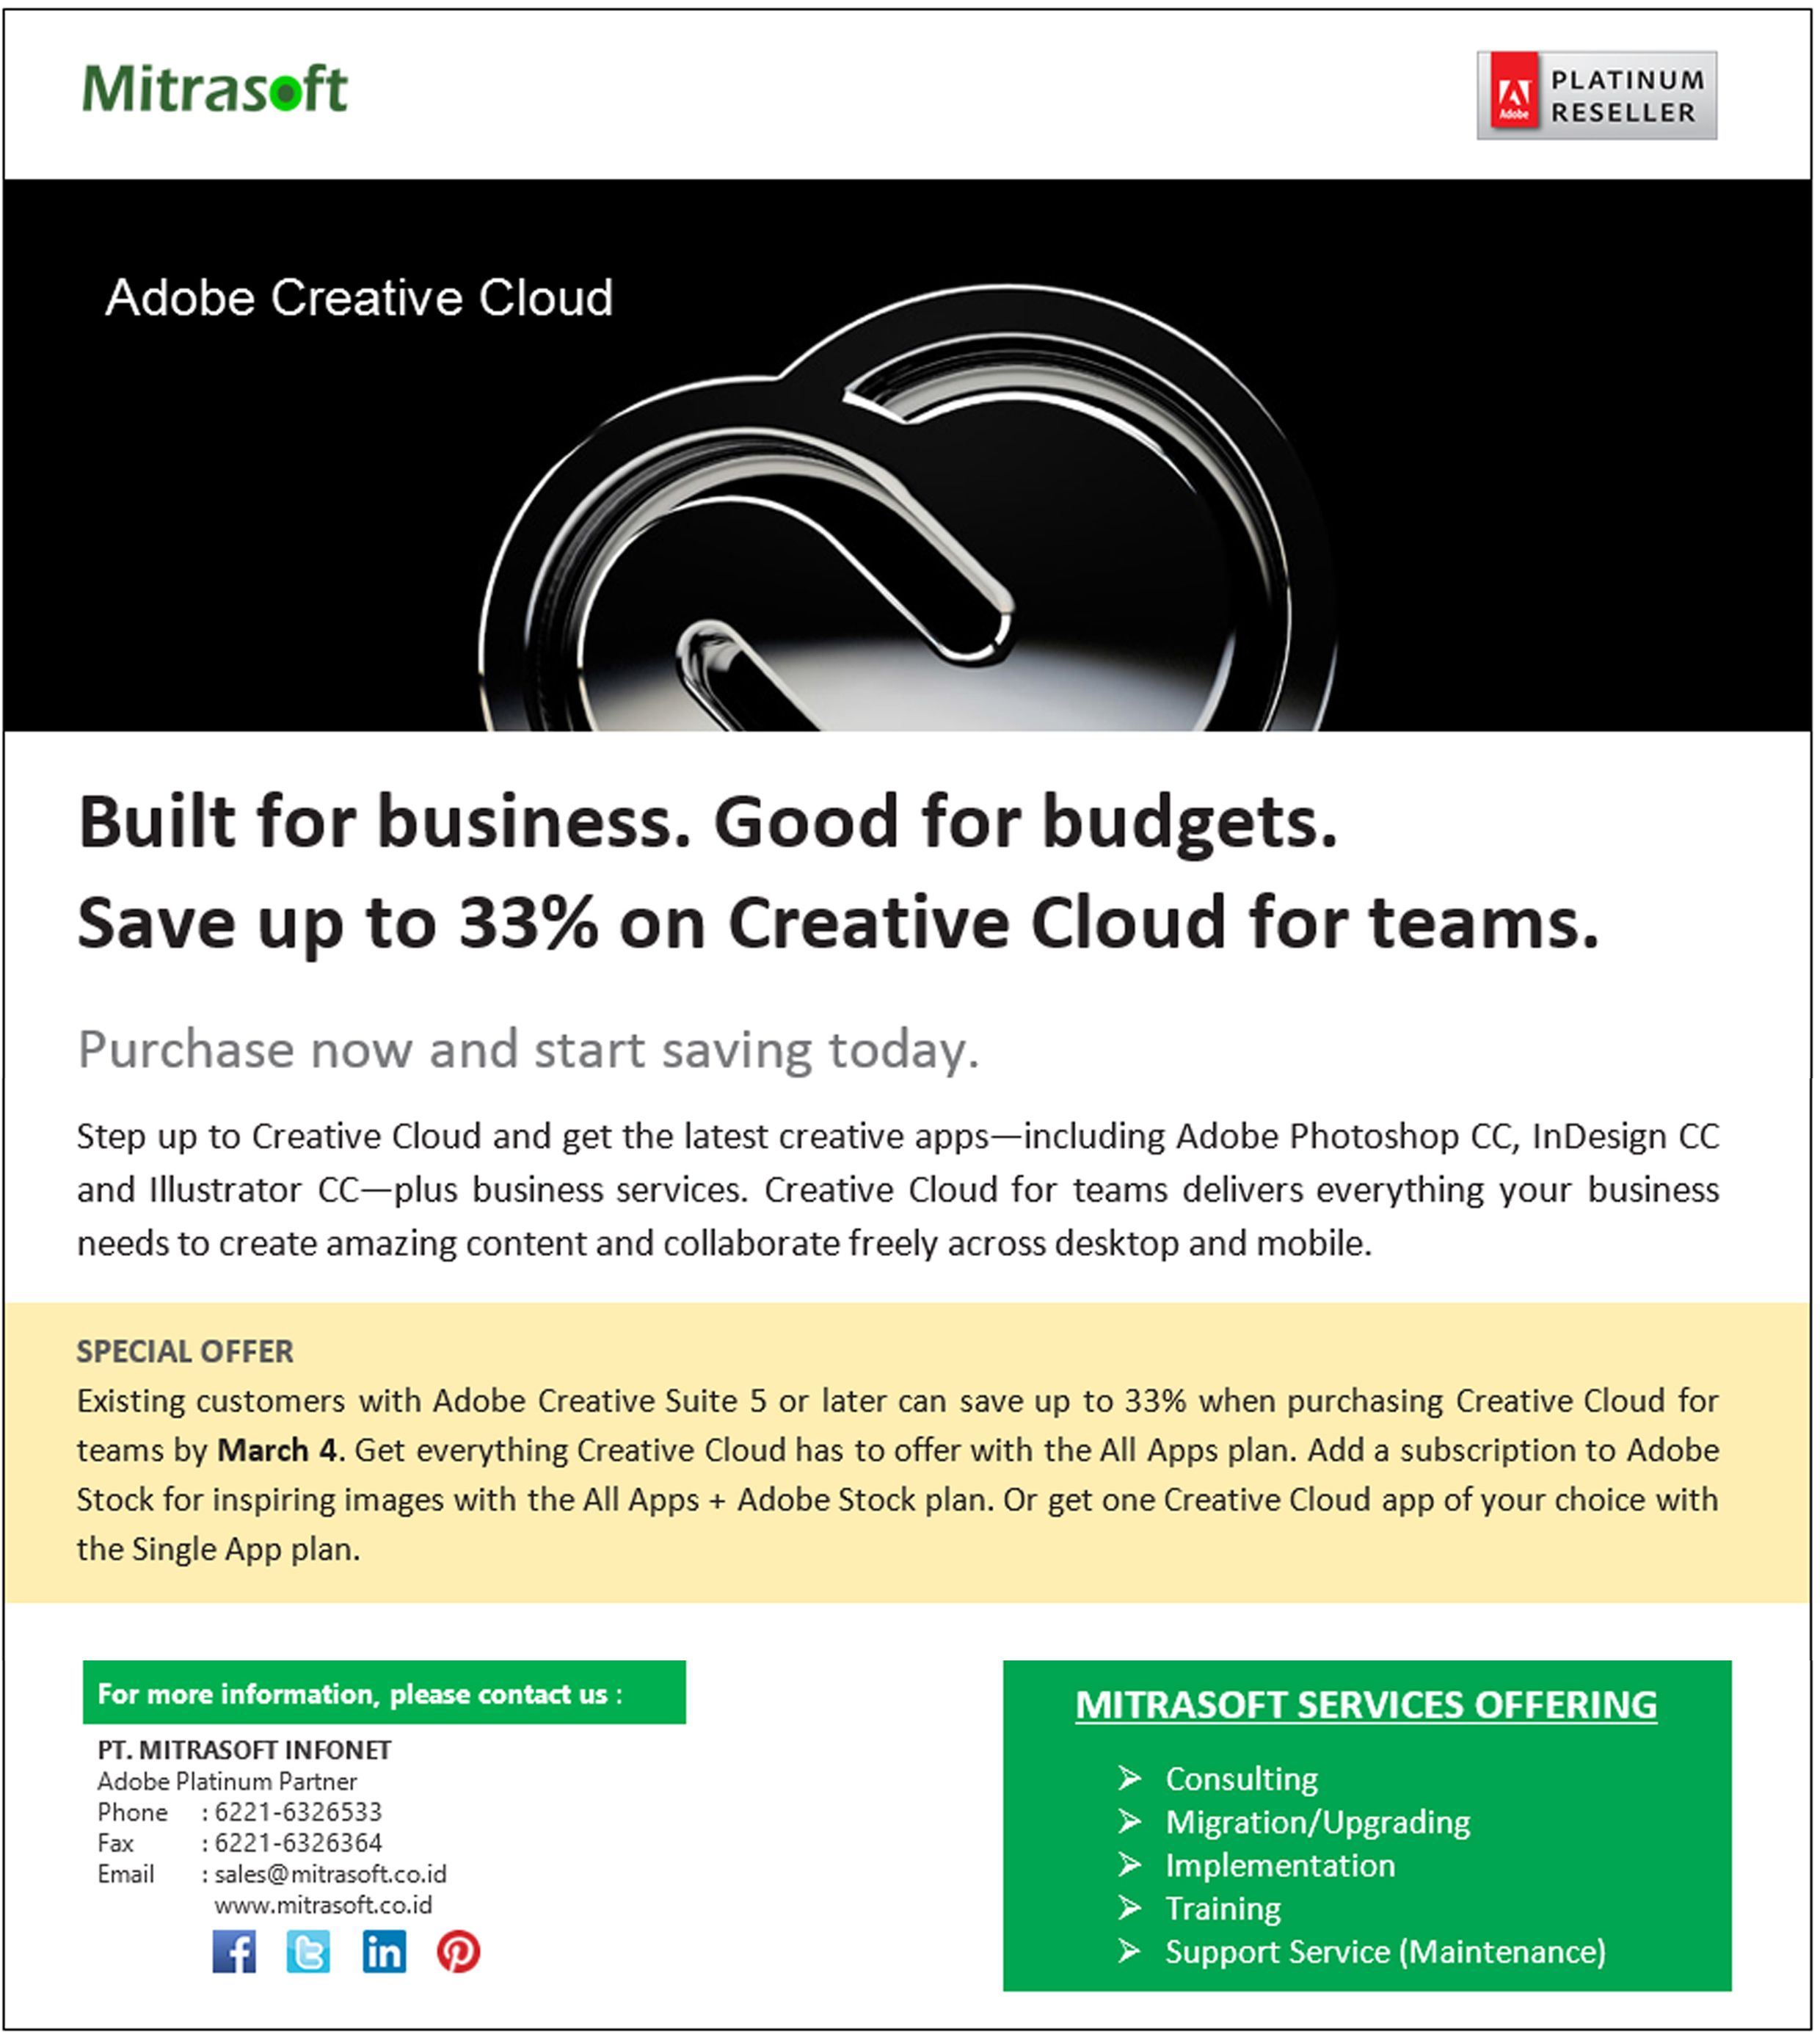 Mitrasoftpromo Adobe Built For Business Good For Budgets Save Up To 33 On Creative Cloud For Teams Like Us Creative Cloud Adobe Creative Cloud Budgeting